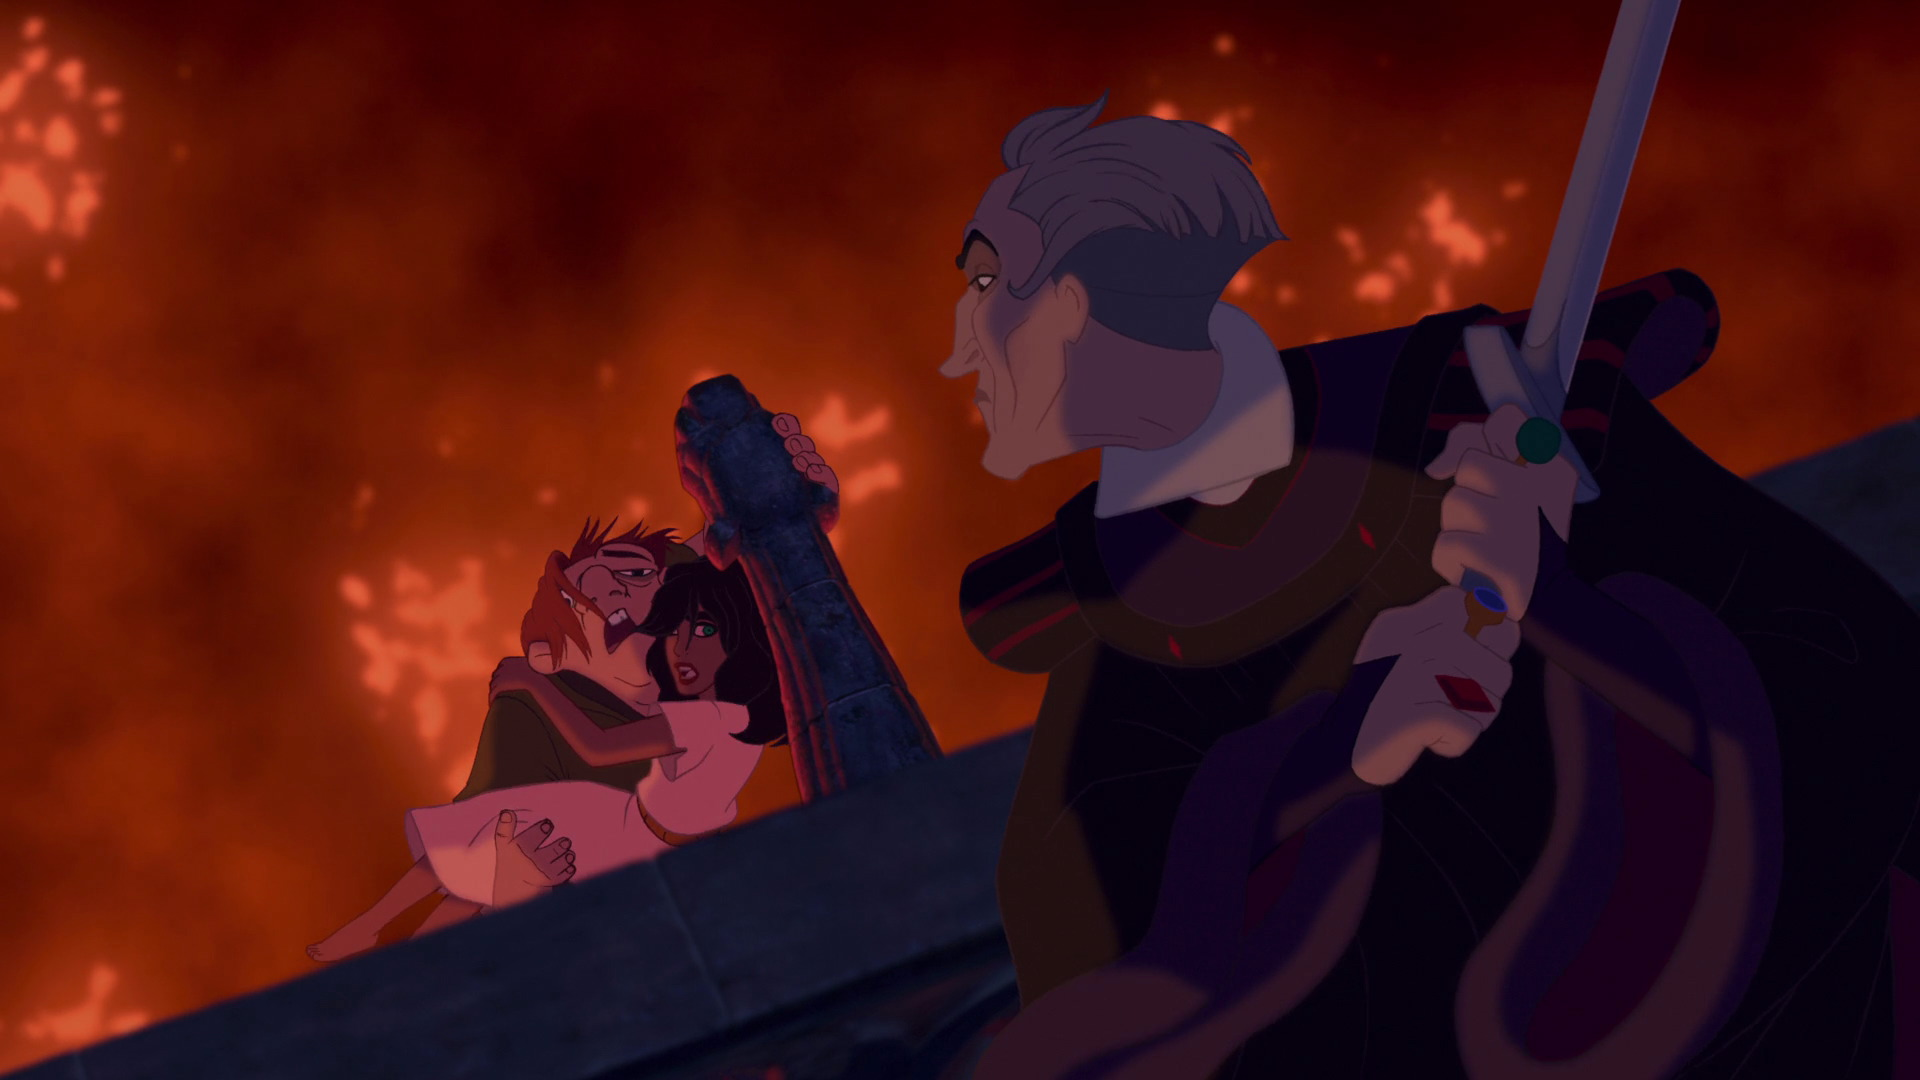 File:Judge Frollo Found Quasimodo & Esmeralda.jpg